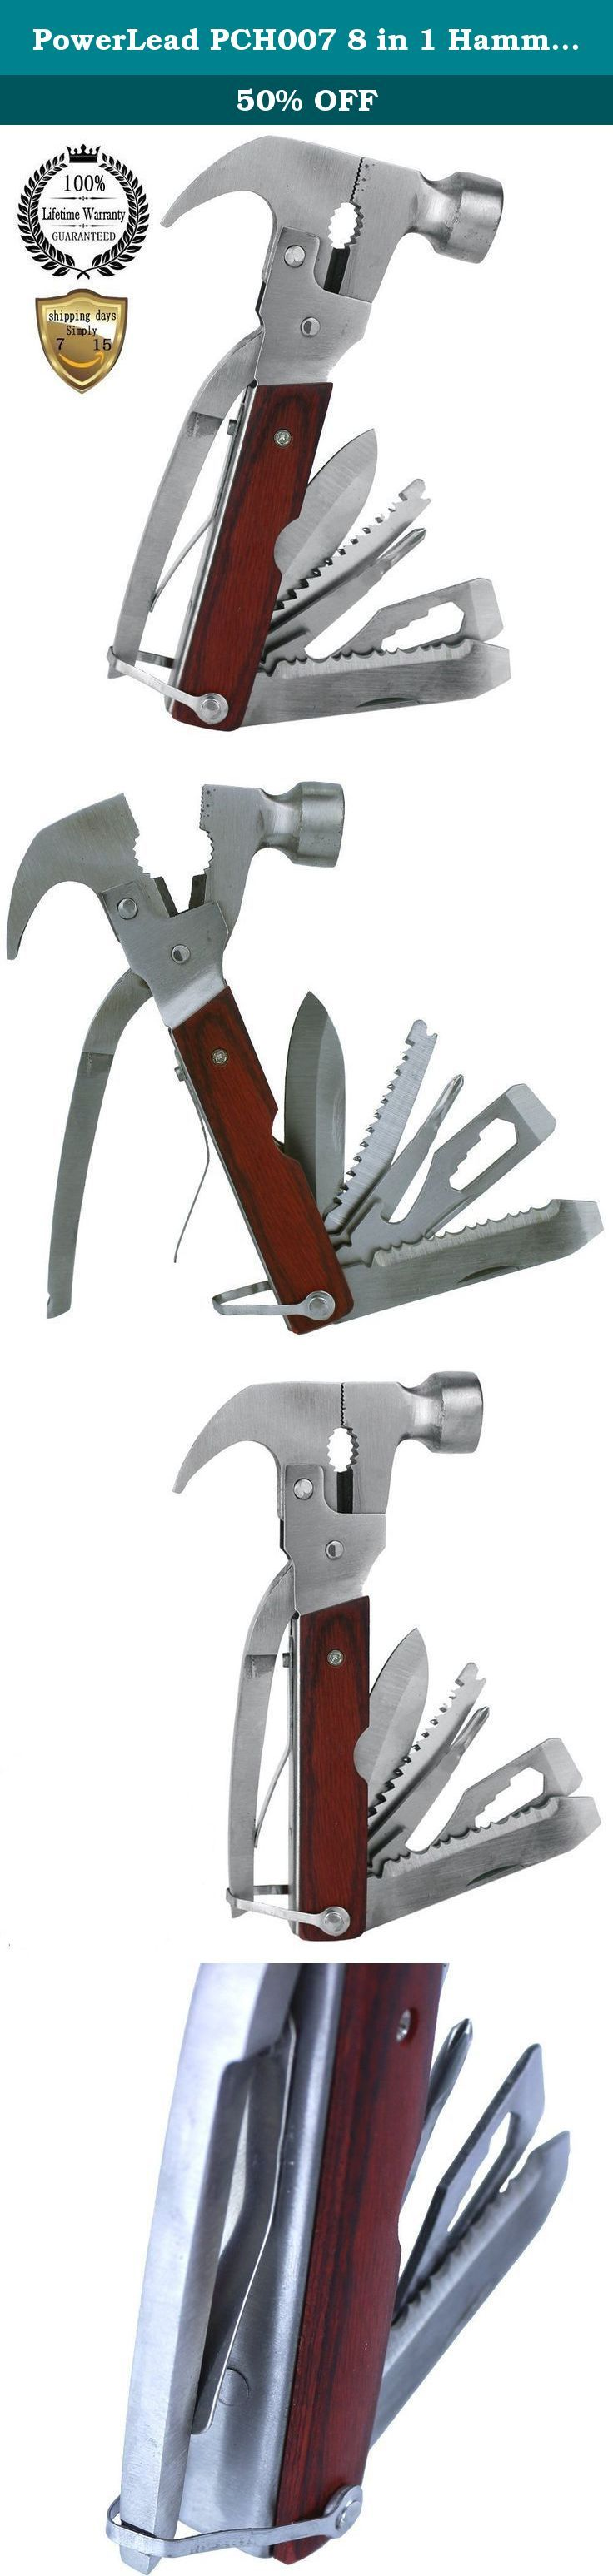 PowerLead PCH007 8 in 1 Hammer Axe Outdoor Pocket Tools Sport Camp Bike Stainless Steel Fold Multi Tools. Specifications: Name:multifunctional rescue tool Used:rescue and self-help Material:steel frame Advantages:convenient carrying, multiple functions, handle insulation characteristics Function: Is a set of cut, axe, hammer, lever and other functions as one of the portable hand tools. Can be open the wall, fire hydrant, removable glass curtain wall, can chop wood, rope. The army, armed...